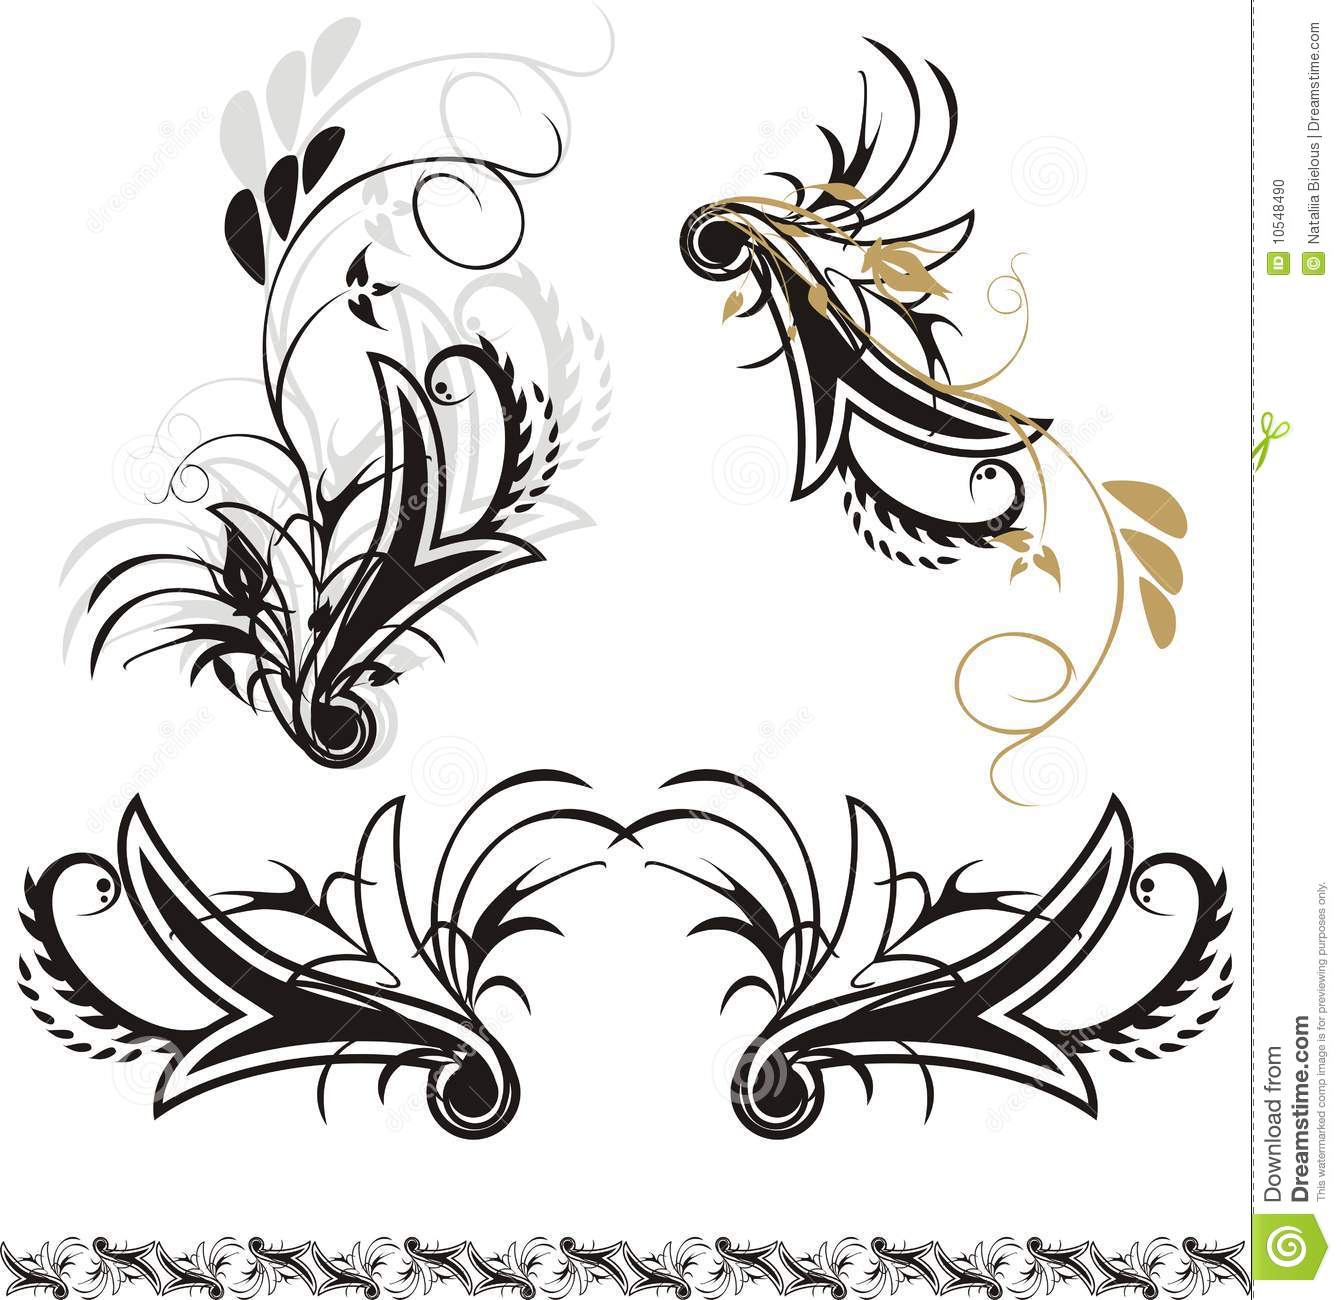 Gothic ornaments stock vector. Illustration of beautiful